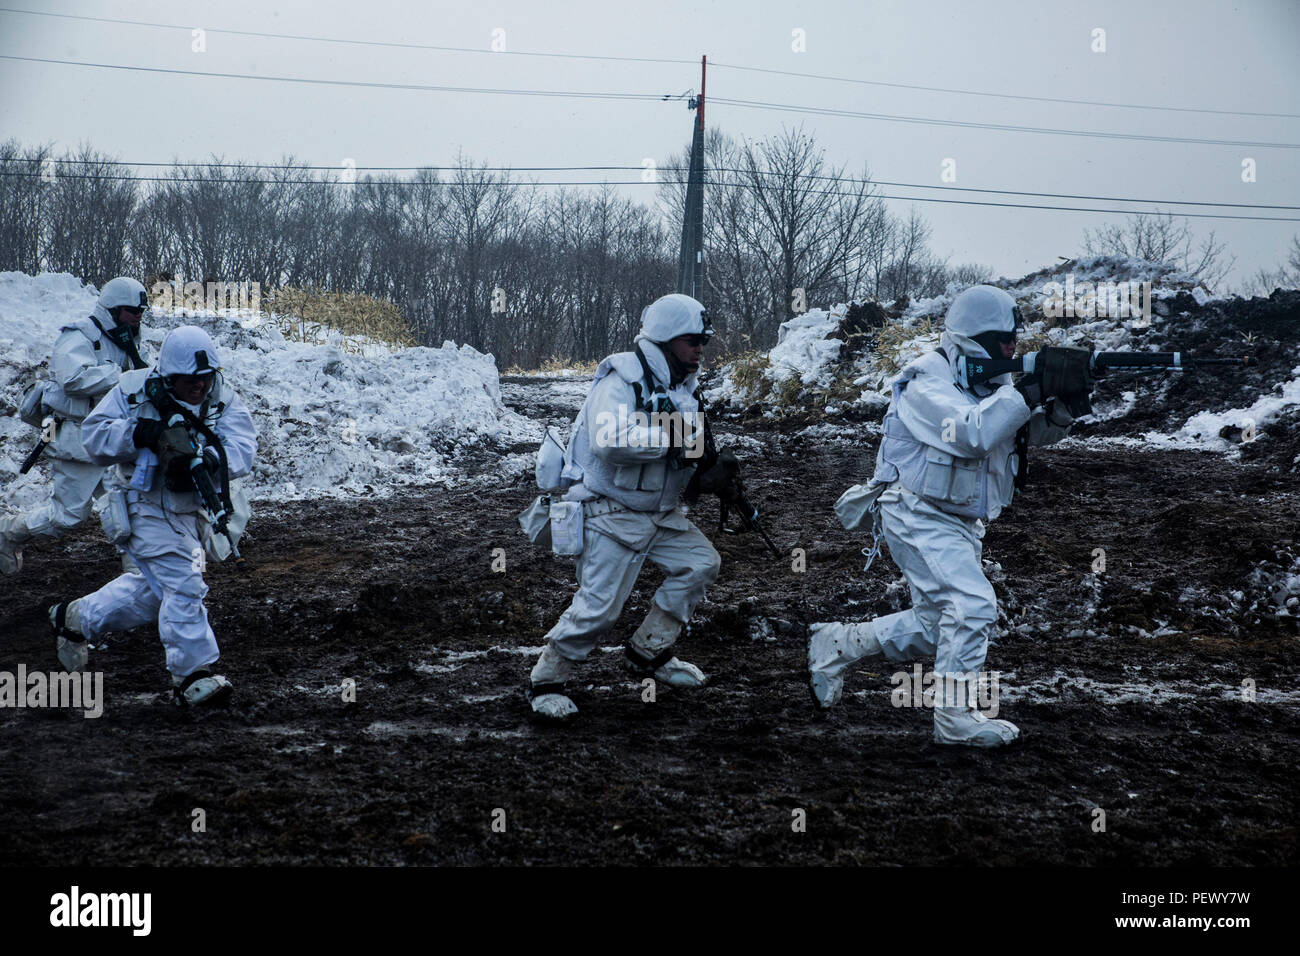 Japan Ground Self-Defense Force soldiers conduct urban operations while quickly approaching an enemy urban area during Forest Light 16-2 in Yausubetsu Training Area, Hokkaido, Japan, Jan. 28, 2016. The exercise strengthens military partnership, solidifies regional security agreements and improves individual and unit-level skills. The JGSDF soldiers are with the 27th Infantry Regiment, 5th Brigade, Northern Army. The Marines are with Kilo Company, 3rd Battalion, 5th Marine Regiment currently assigned to 4th Marine Regiment, 3rd Marine Division, III Marine Expeditionary Force. (U.S. Marine Corps Stock Photo